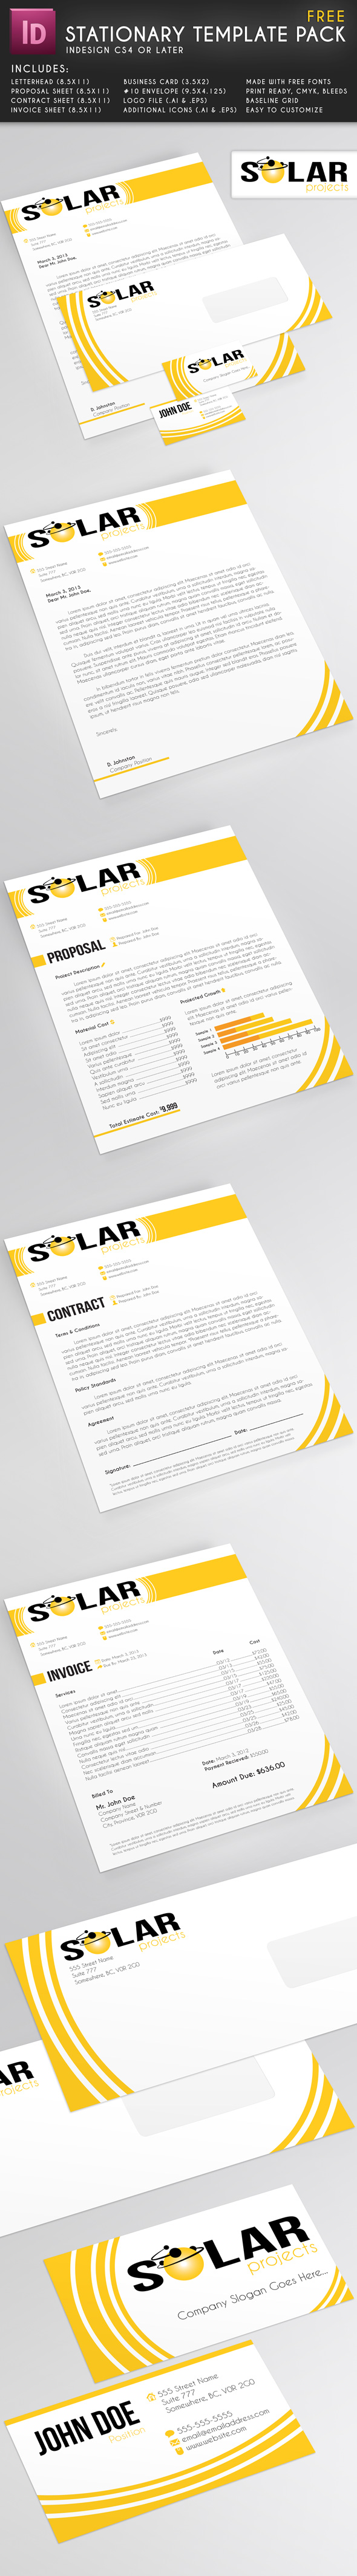 Stationary template pack indesign cs4cs5 free download edit stationary template pack indesign cs4cs5 free download edit freely yelopaper Image collections